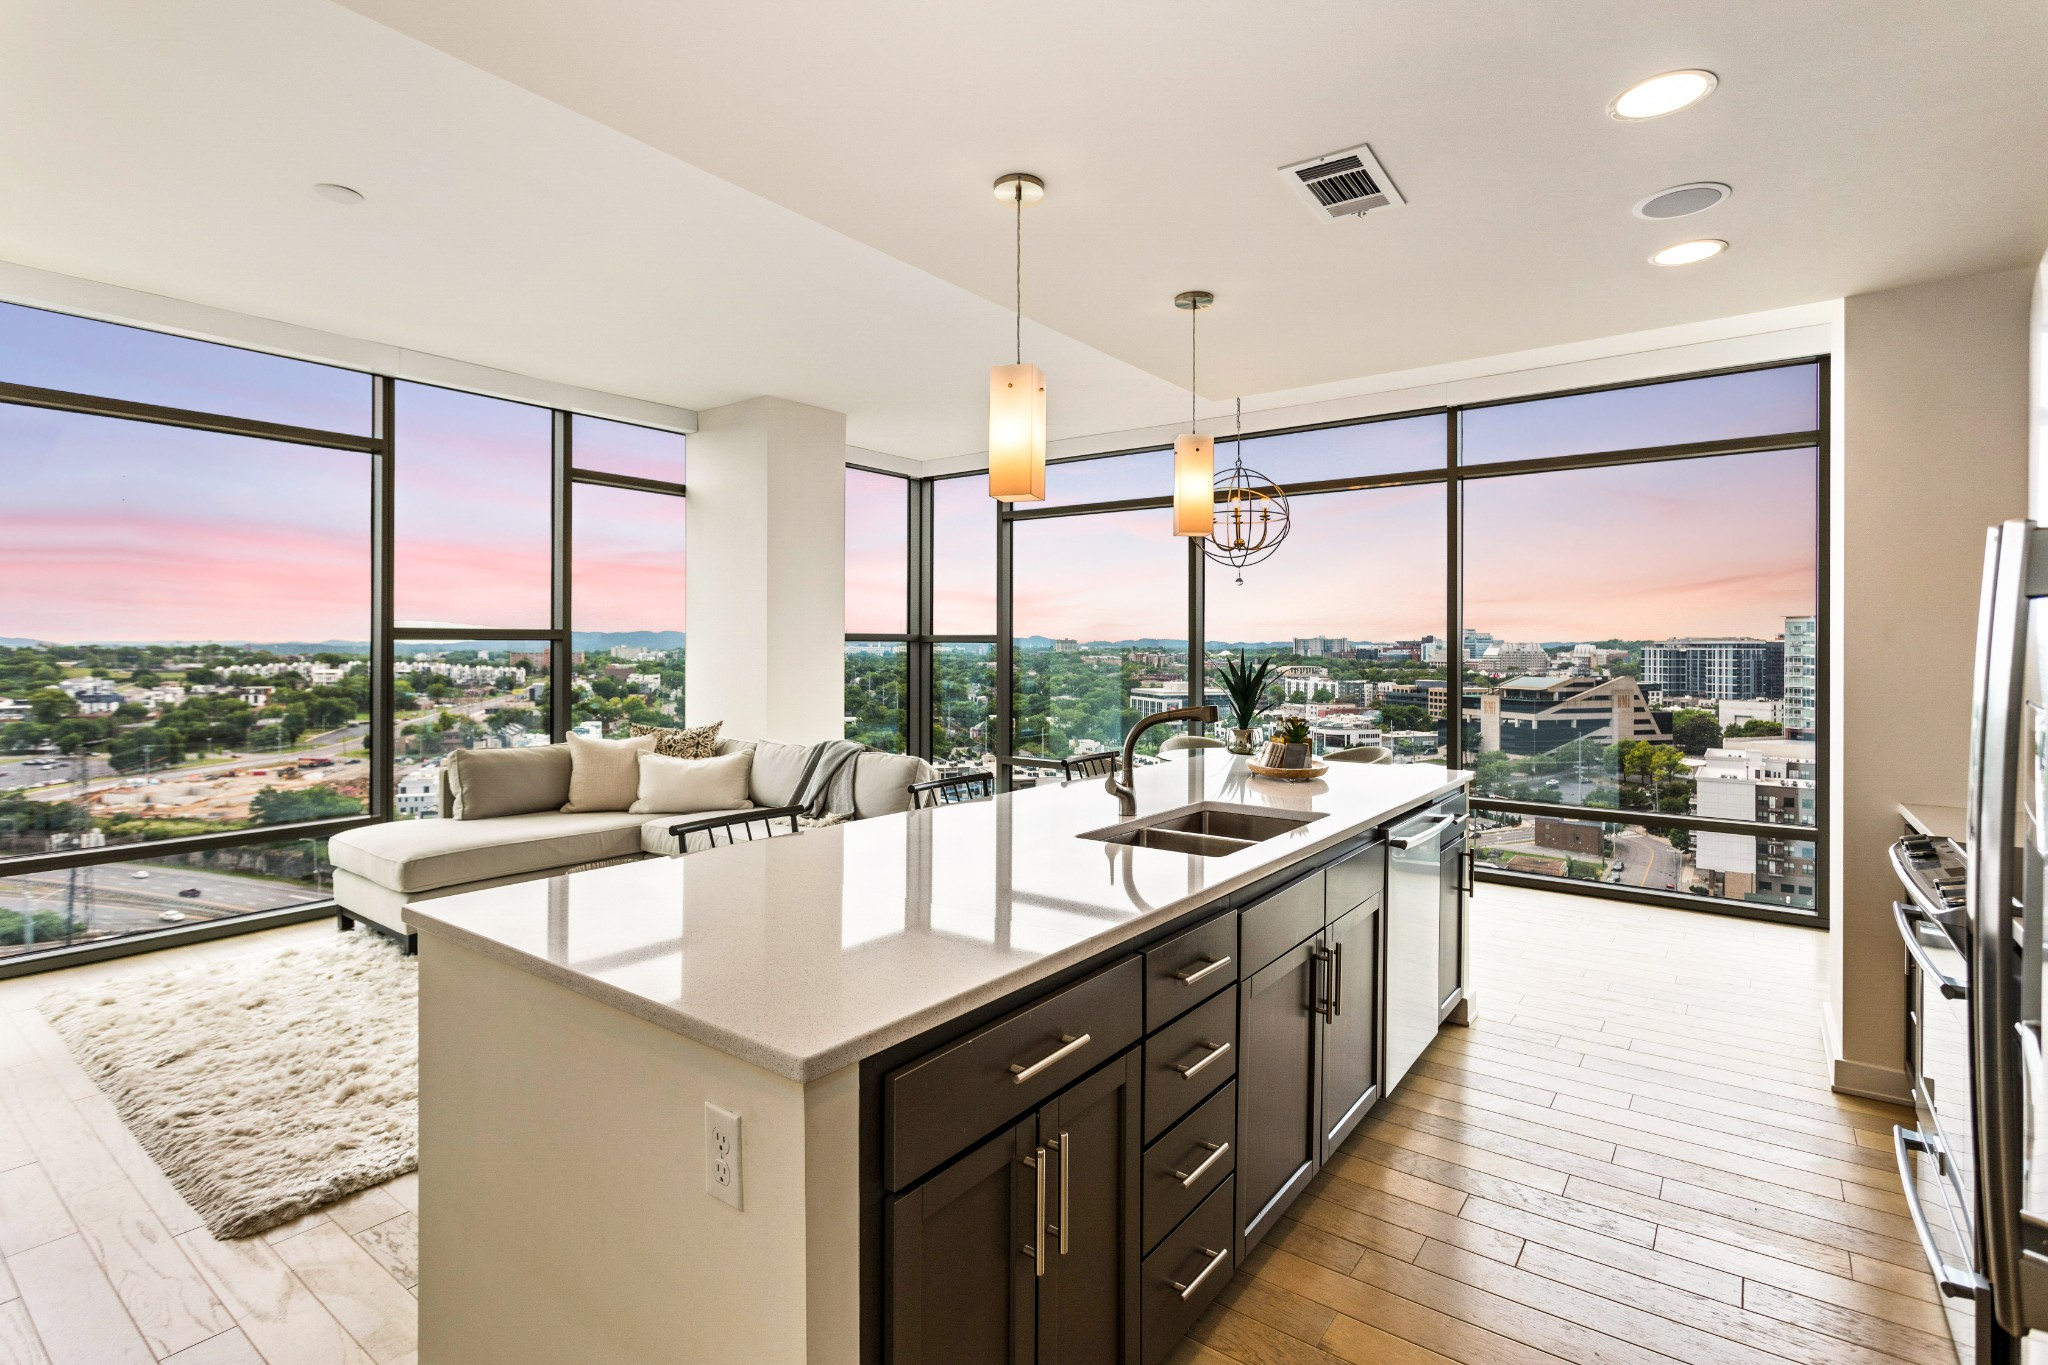 Amazing corner 2-bed condo of Nashville's most desired high-rise developments! Unit offers incredible sunset views & includes all kitchen appliances, W/D, motorized window treatments, & custom California Closets; 2 parking space, #32 & #34, & a 5x6 storage space, #32, will convey with the unit.